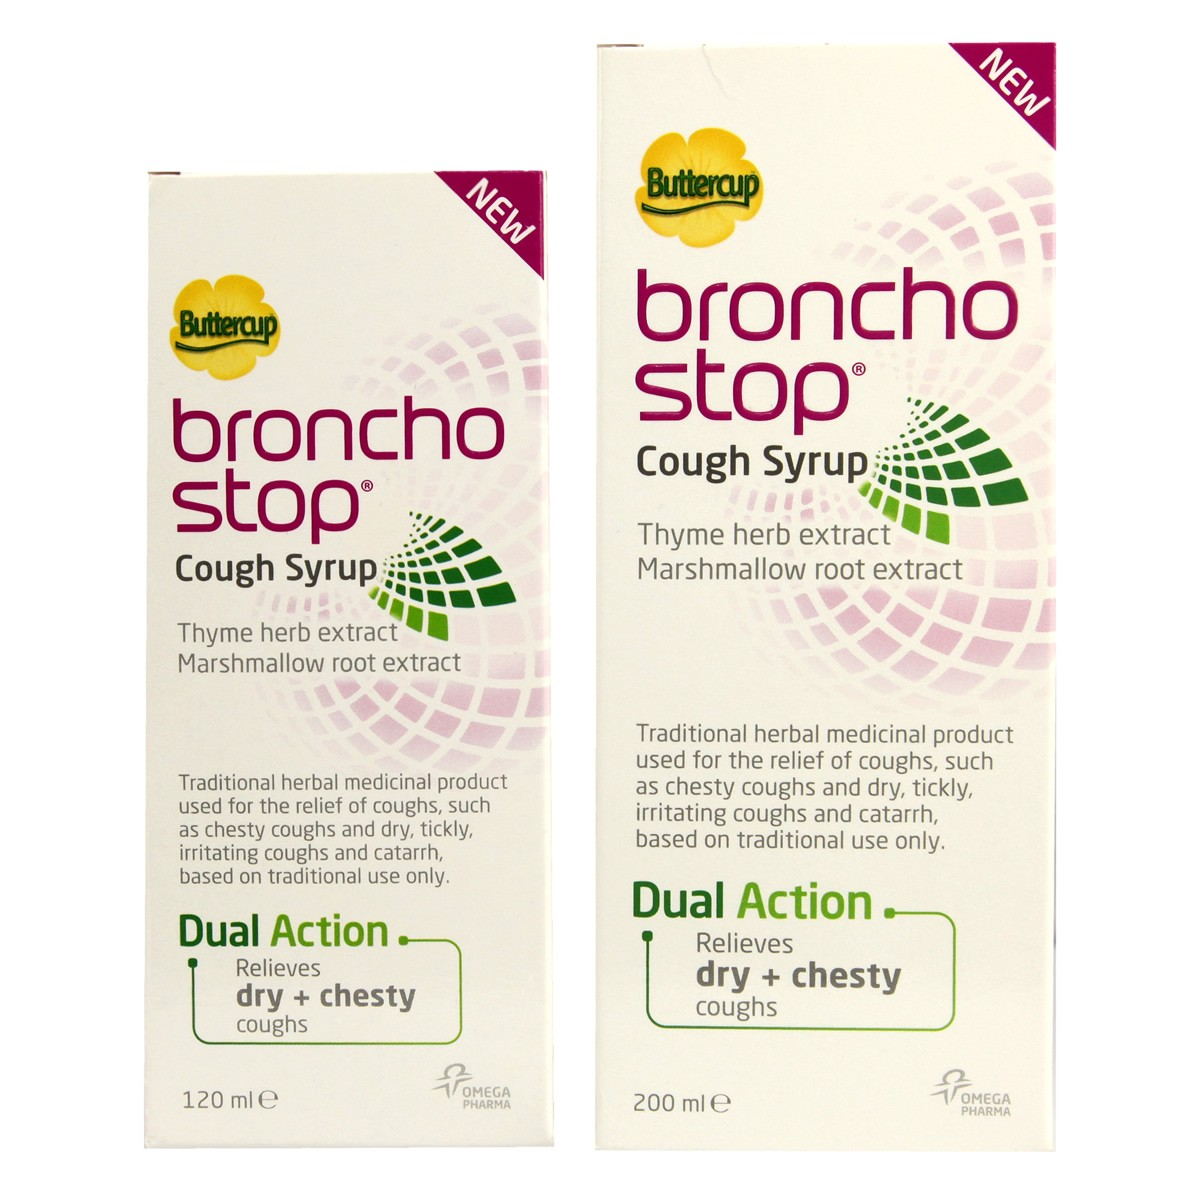 Buttercup BronchoStop Cough Syrup